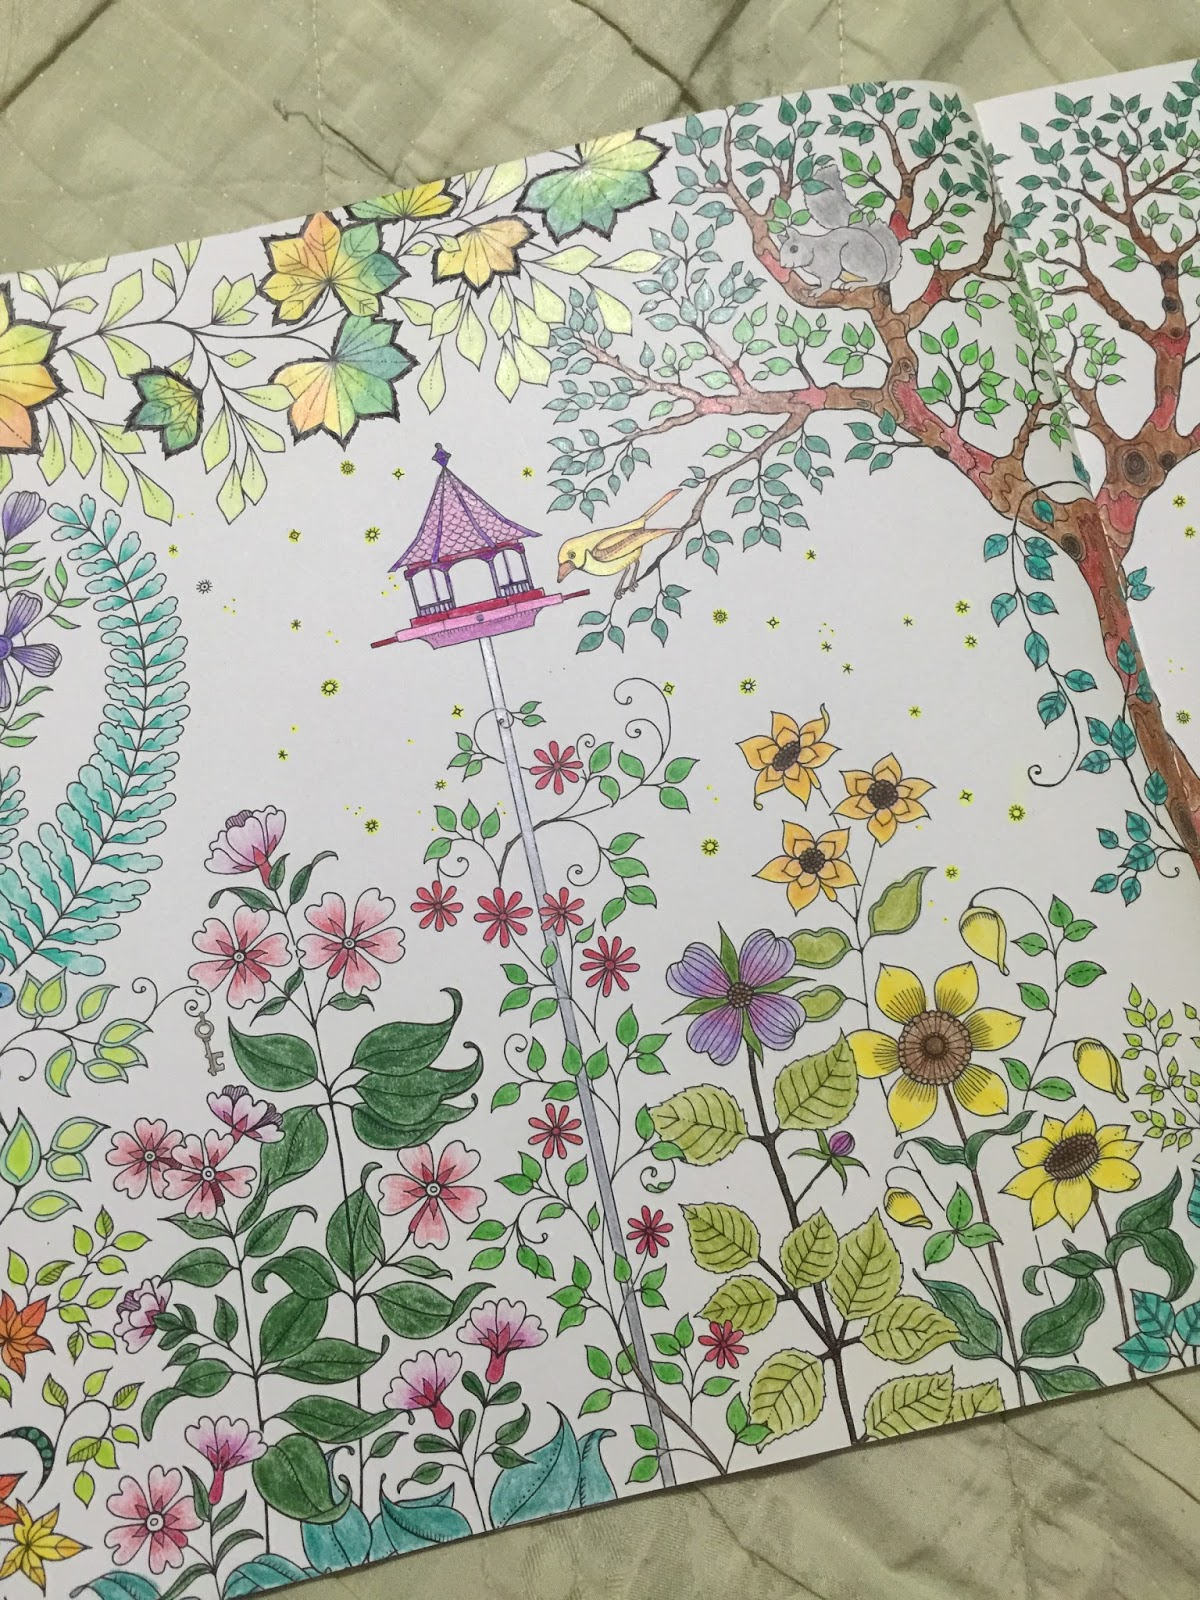 How Many Pages In Adult Coloring Book Secret Garden | Secret Garden ...